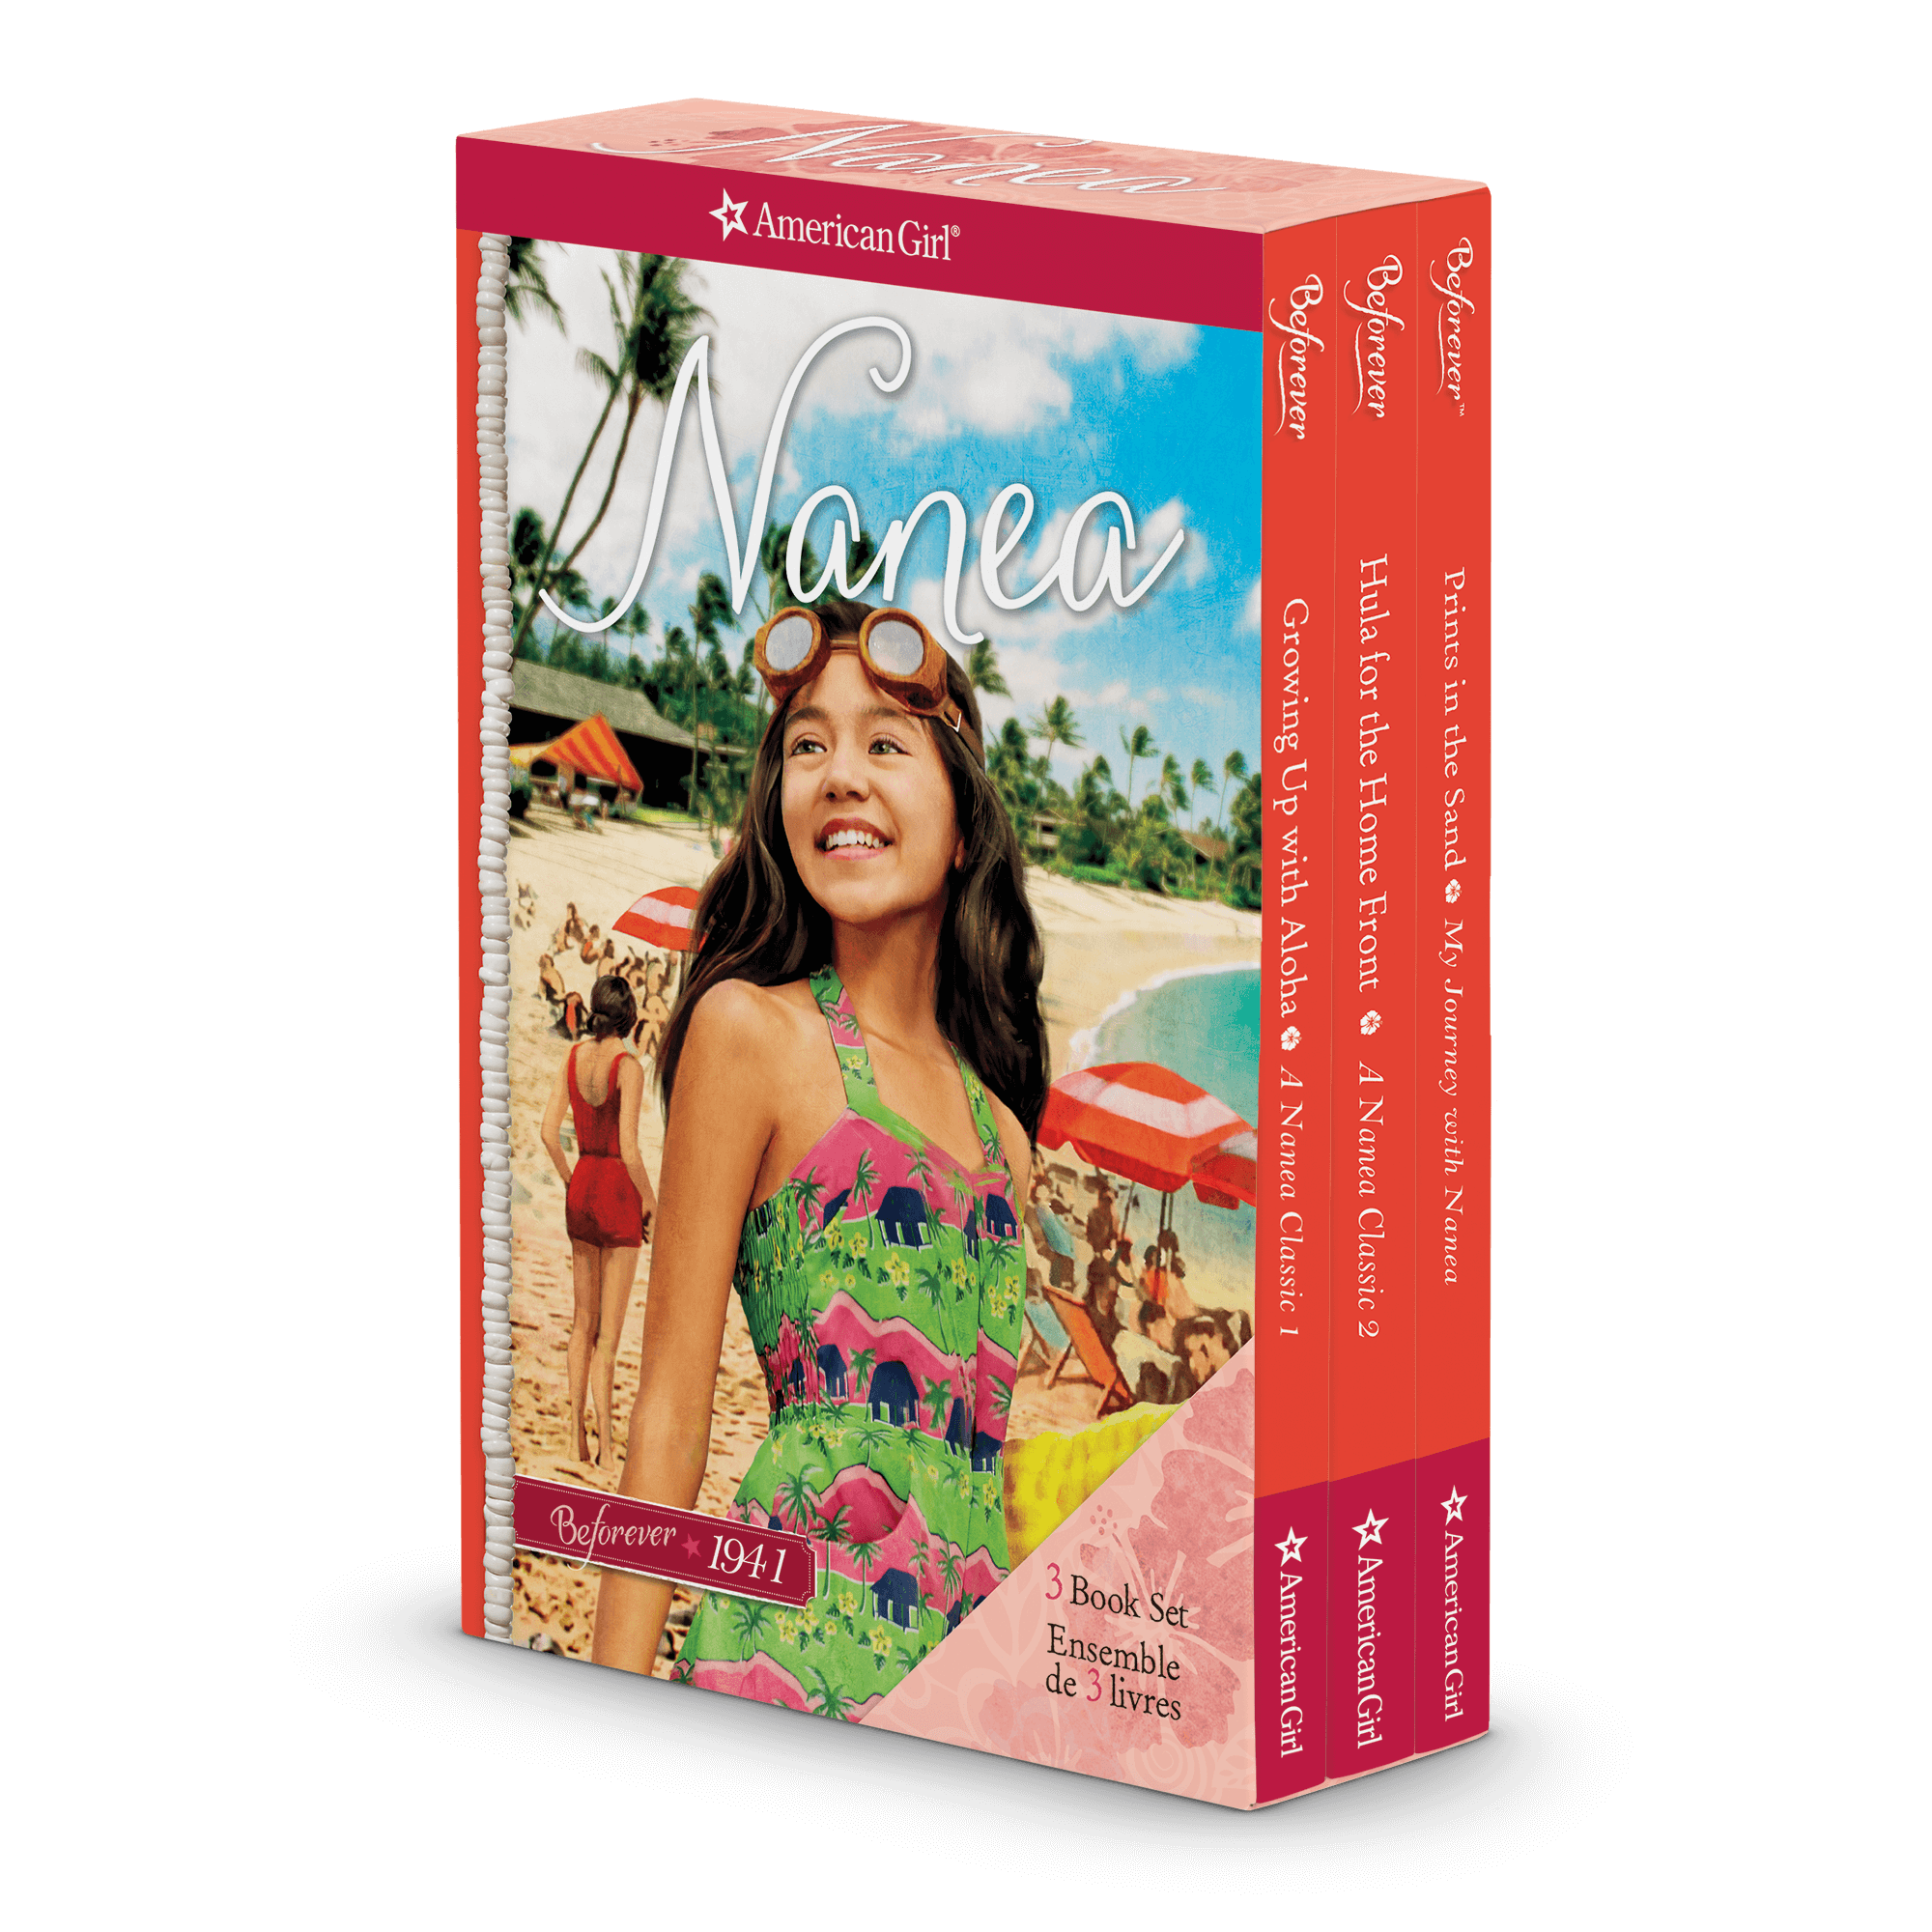 New! Nanea 3-Book Boxed Set